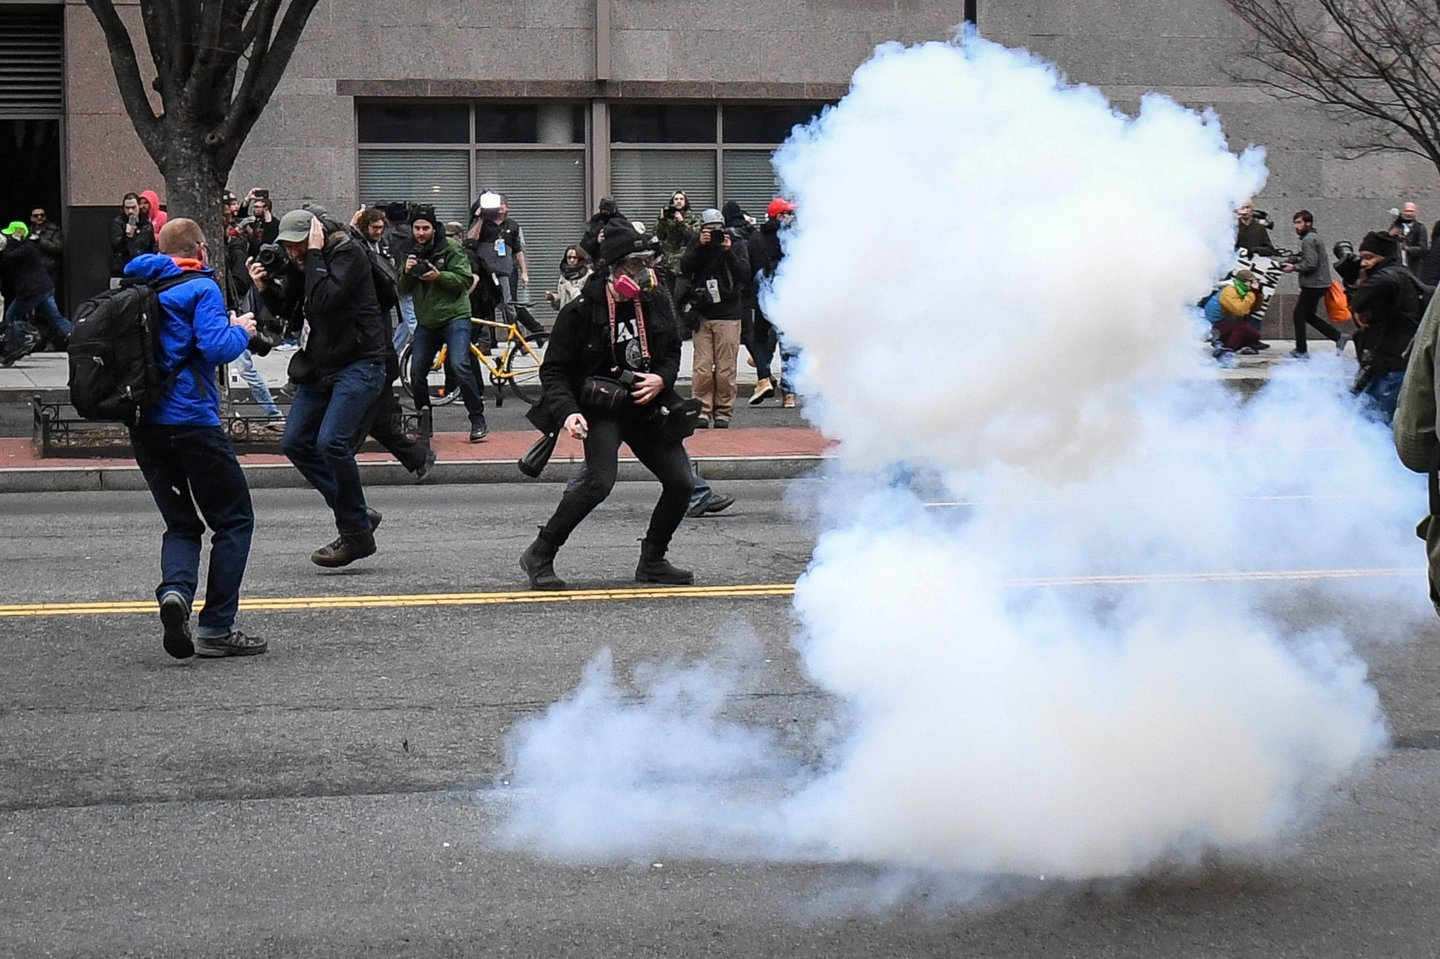 Protesters and journalists scramble as stun grenades are deployed by police during a protest near the inauguration of President Donald Trump in Washington, DC, U.S., January 20, 2017.